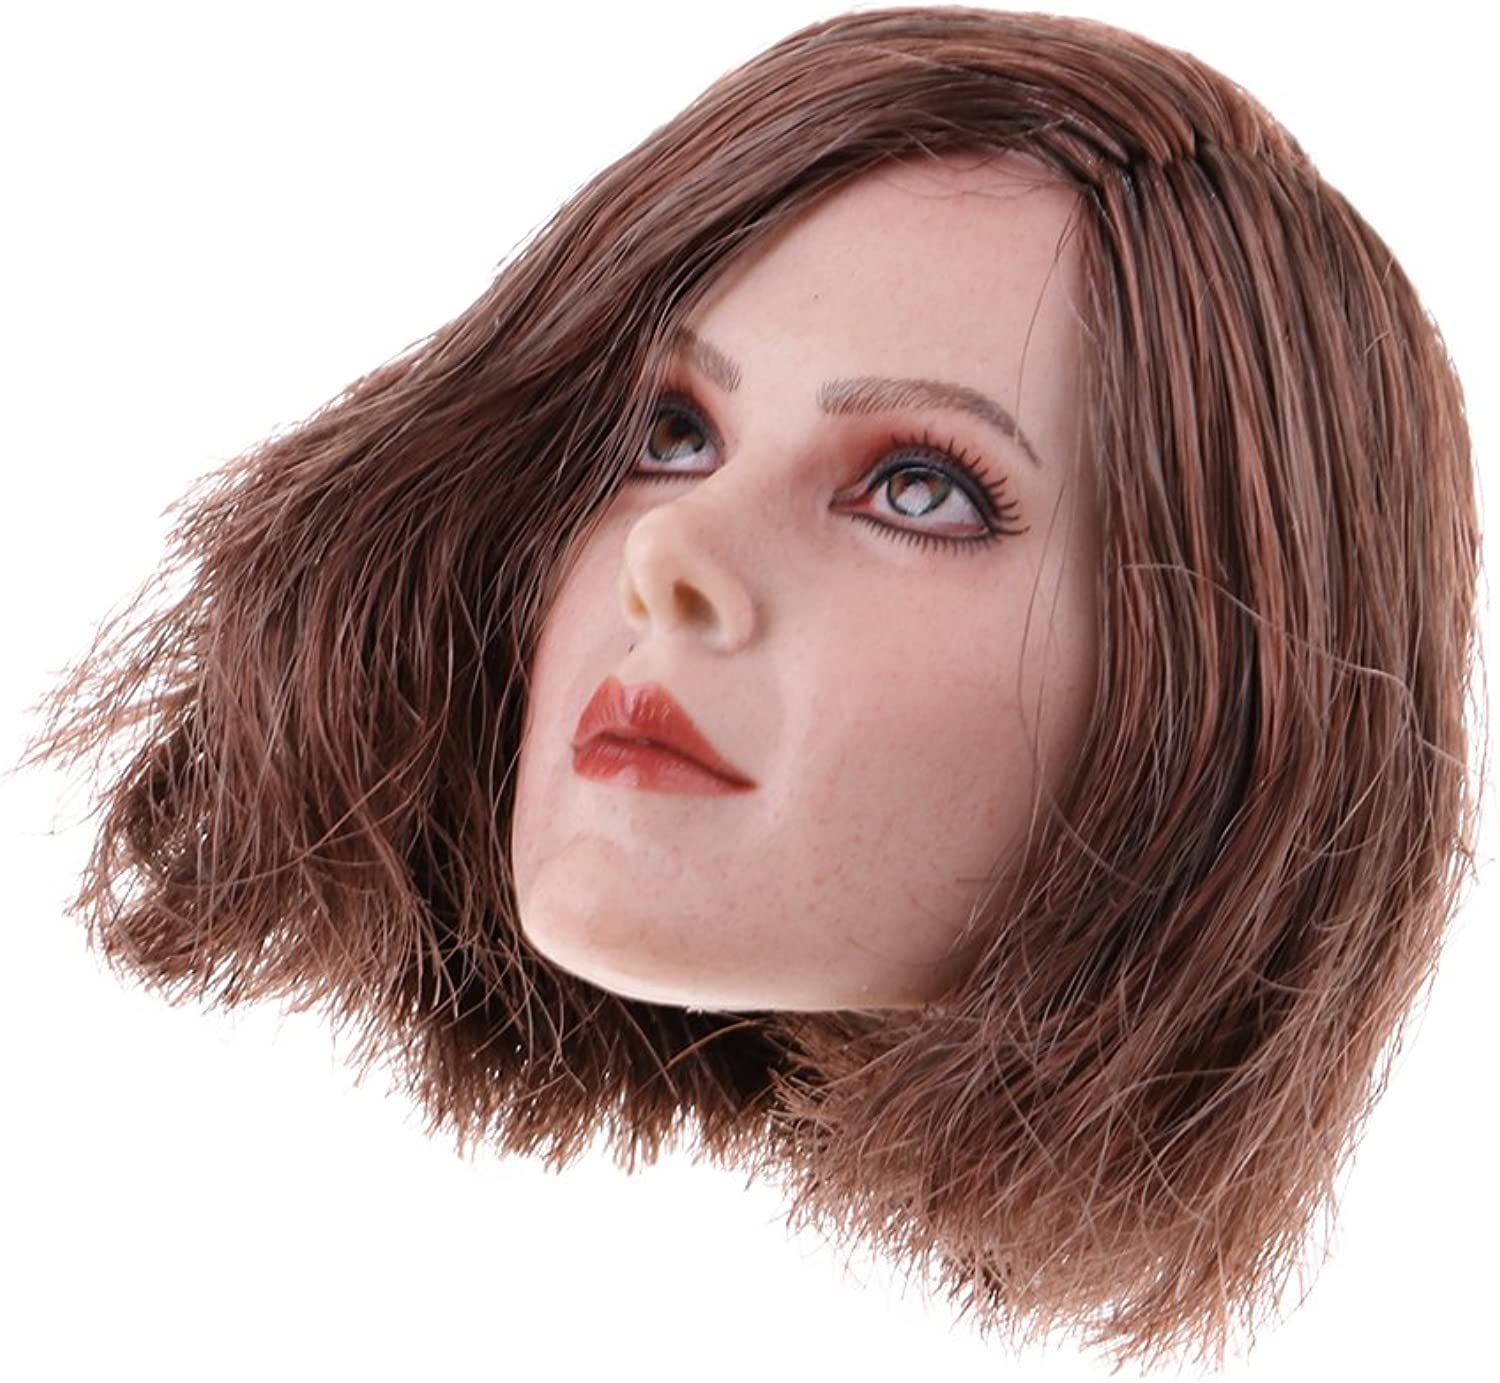 MagiDeal 1 6 Scale Head Sculpt Female Model for 12inch Action Figure Body Doll Toys B